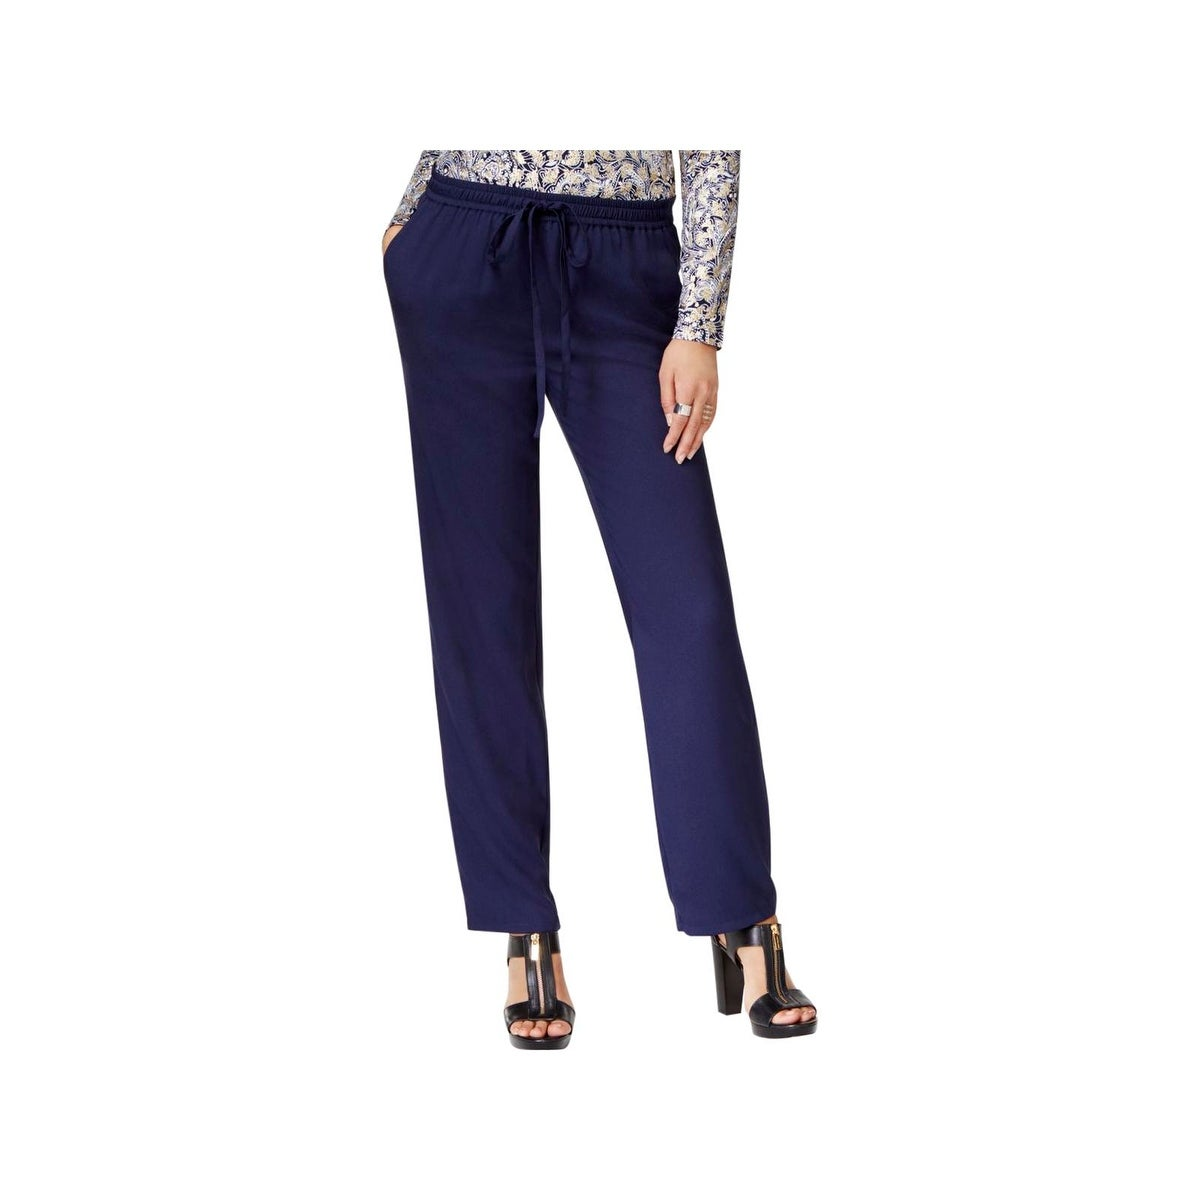 0993edceffa270 MICHAEL Michael Kors Pants | Find Great Women's Clothing Deals Shopping at  Overstock